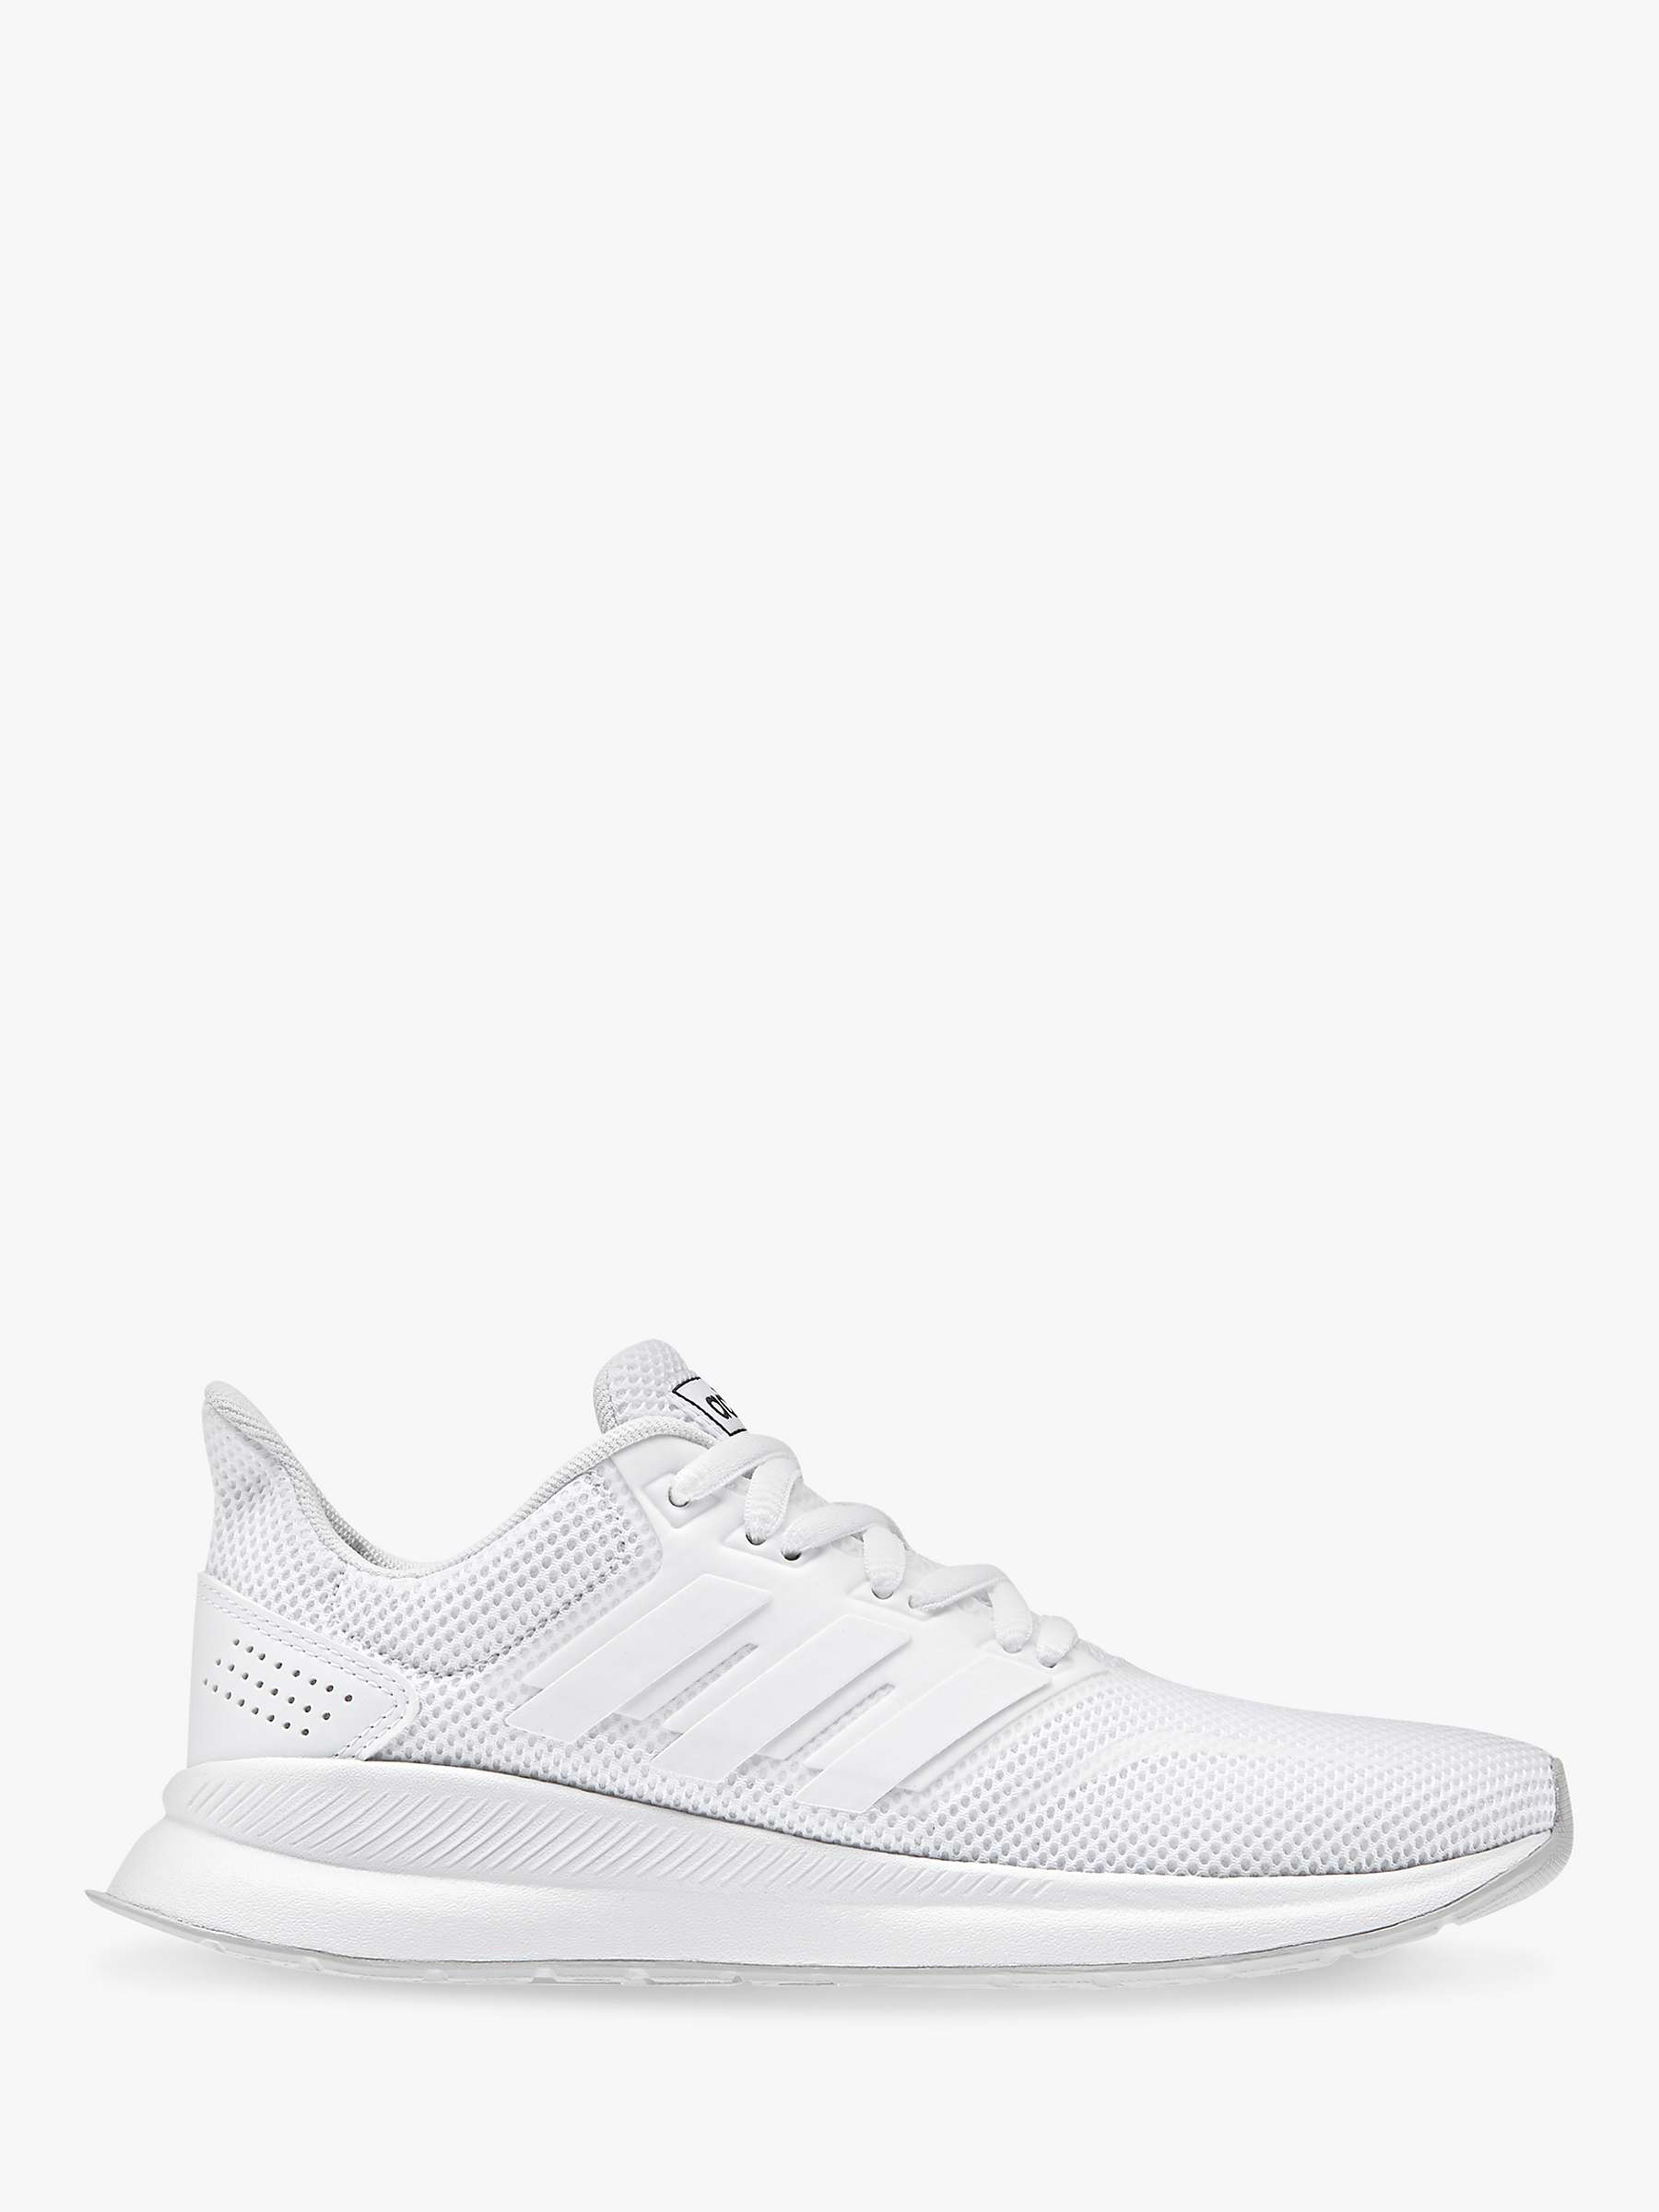 adidas Children's Runfalcon Lace Up Trainers, FTWR White